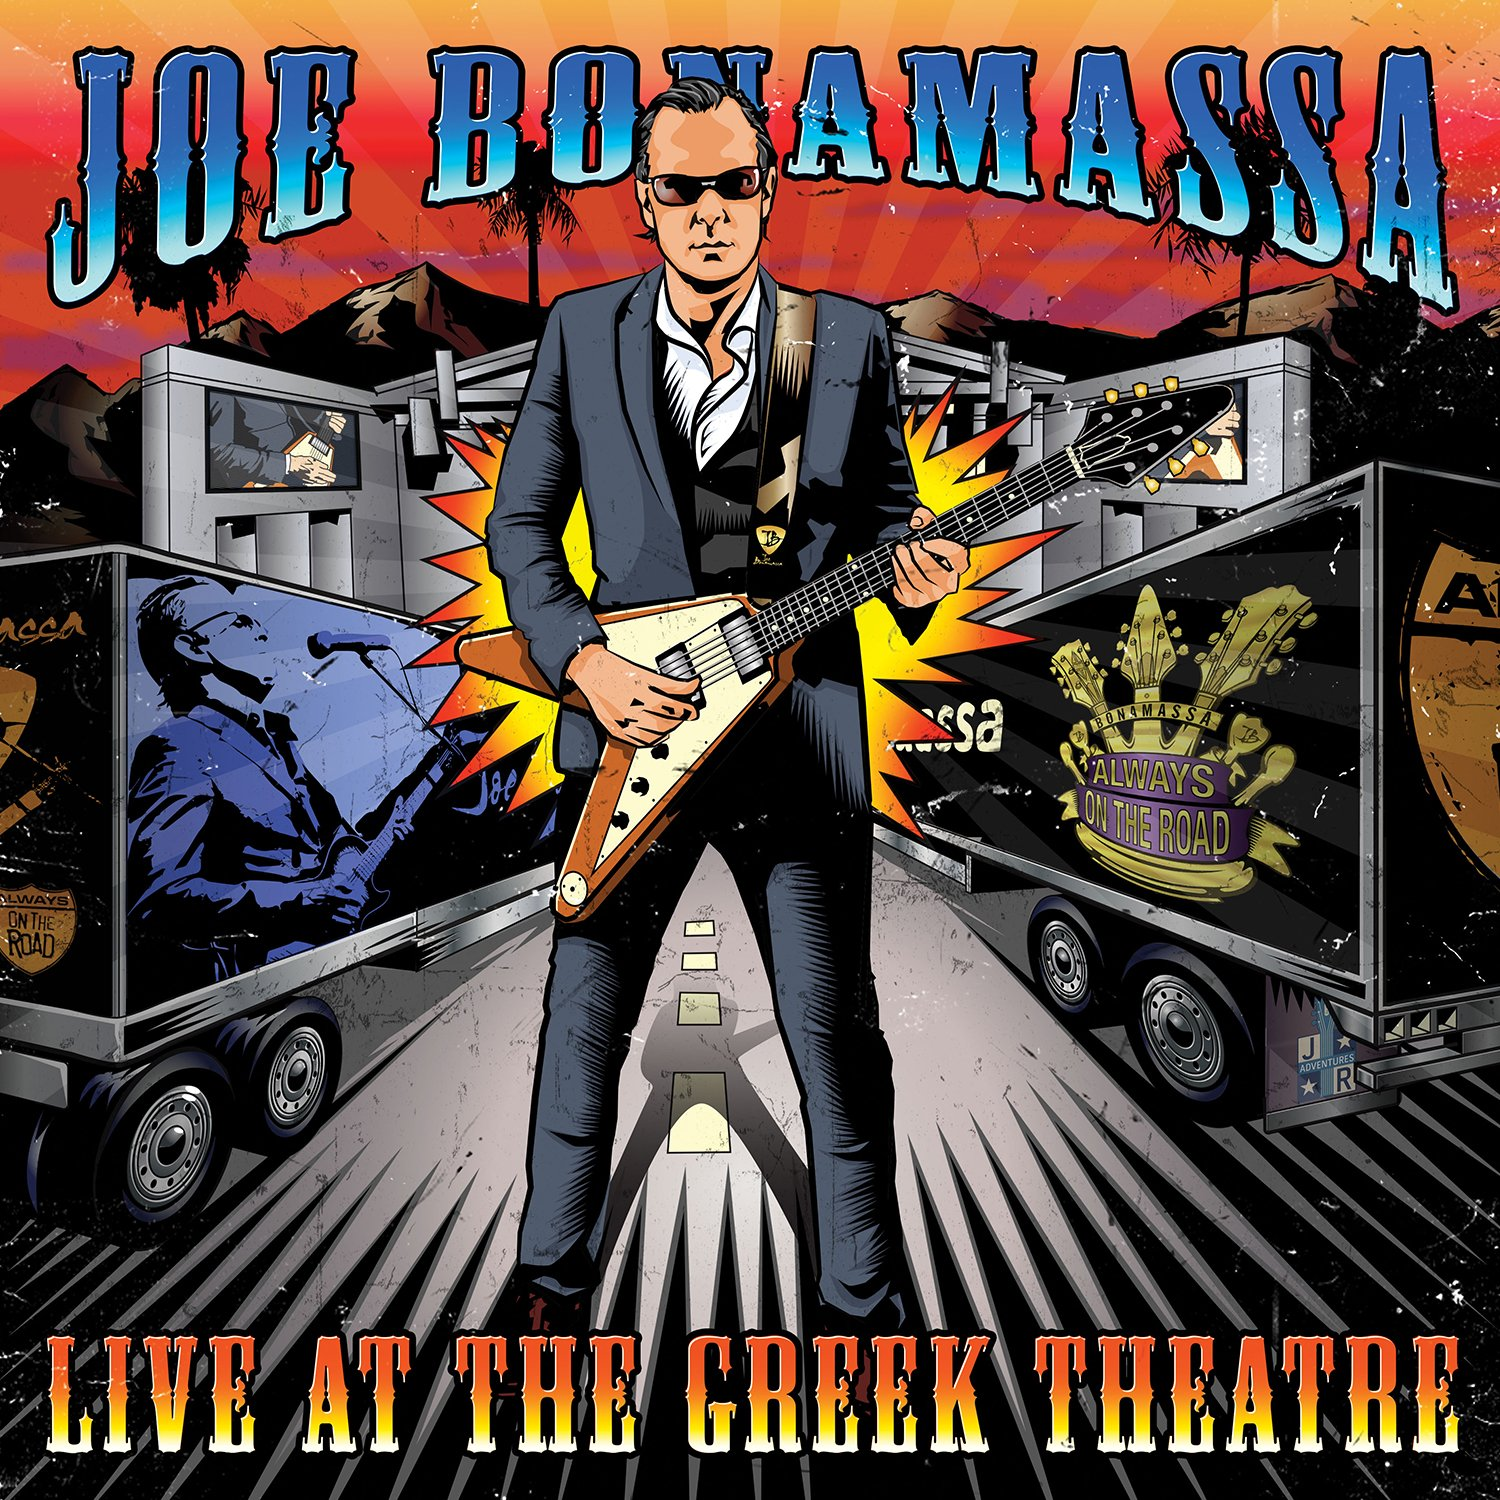 Live At The Greek Theatre [2 CD] by J&R Adventures